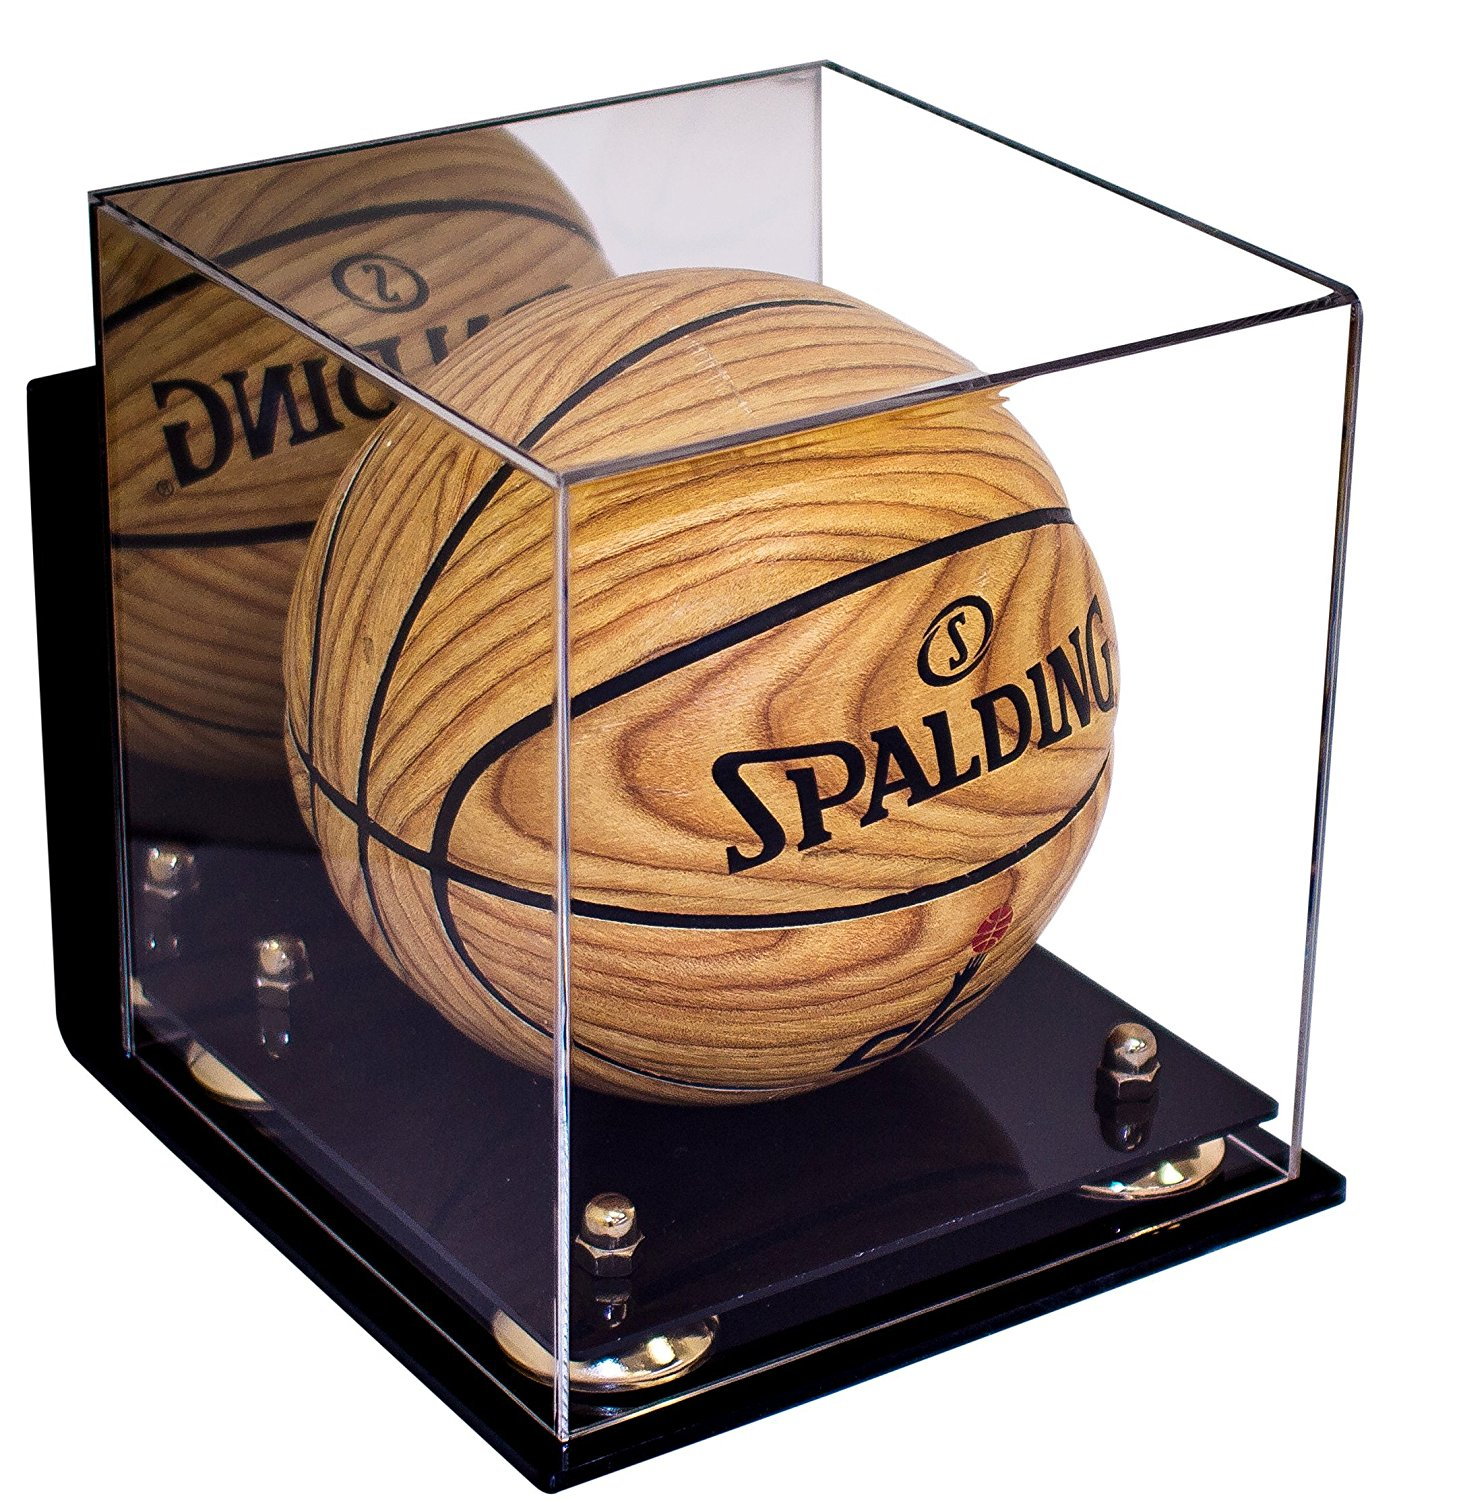 Deluxe Acrylic MINI - Miniature (not full size) Basketball Display Case with Gold Risers Mirror and Wall Mount (A015-GR)